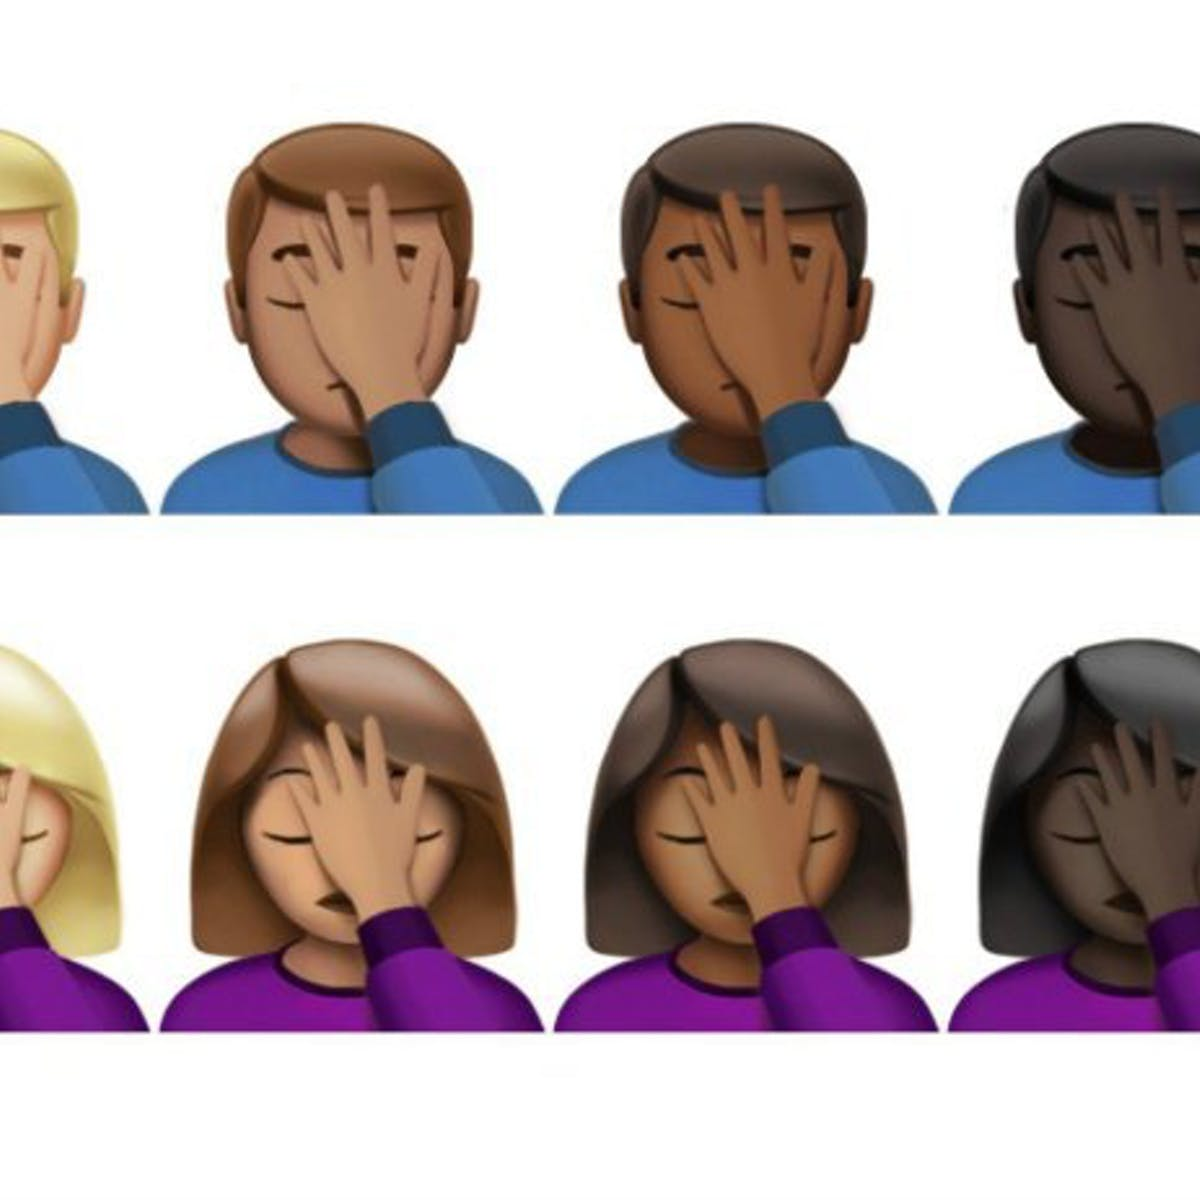 The Facepalm, the Newest Emoji, Dates Back Thousands of Years | Inverse